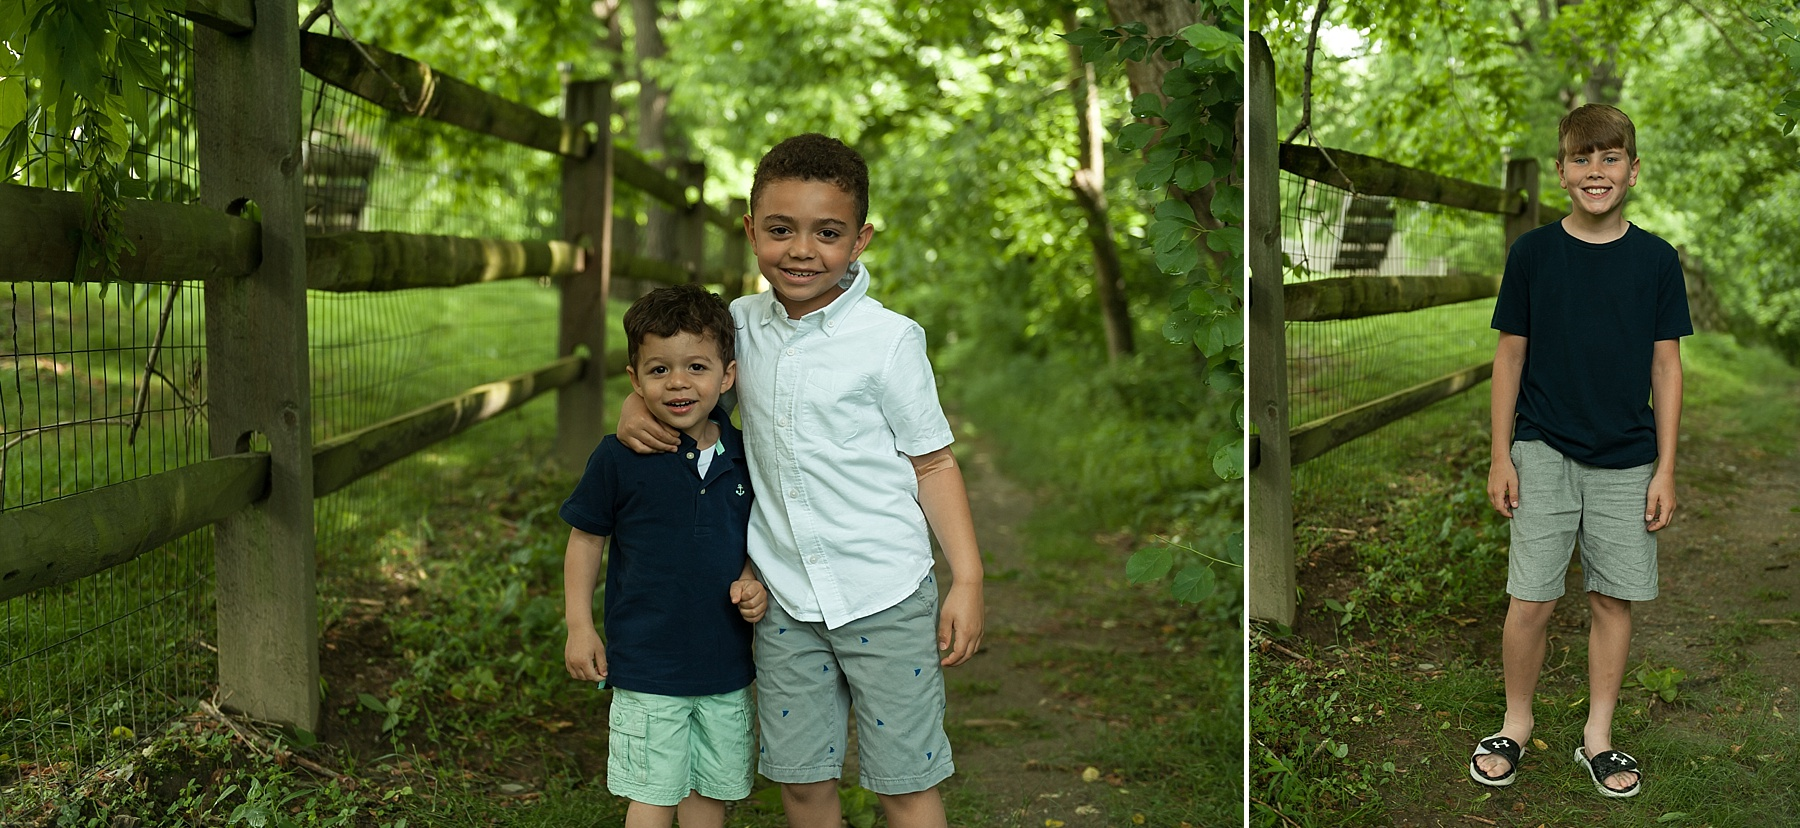 Wendy Zook Photography | Frederick MD family photographer, family photographer, MD family photographer, family session, family portraits, MD family photos, Lake Linganore family portraits, Lake Linganore family photos